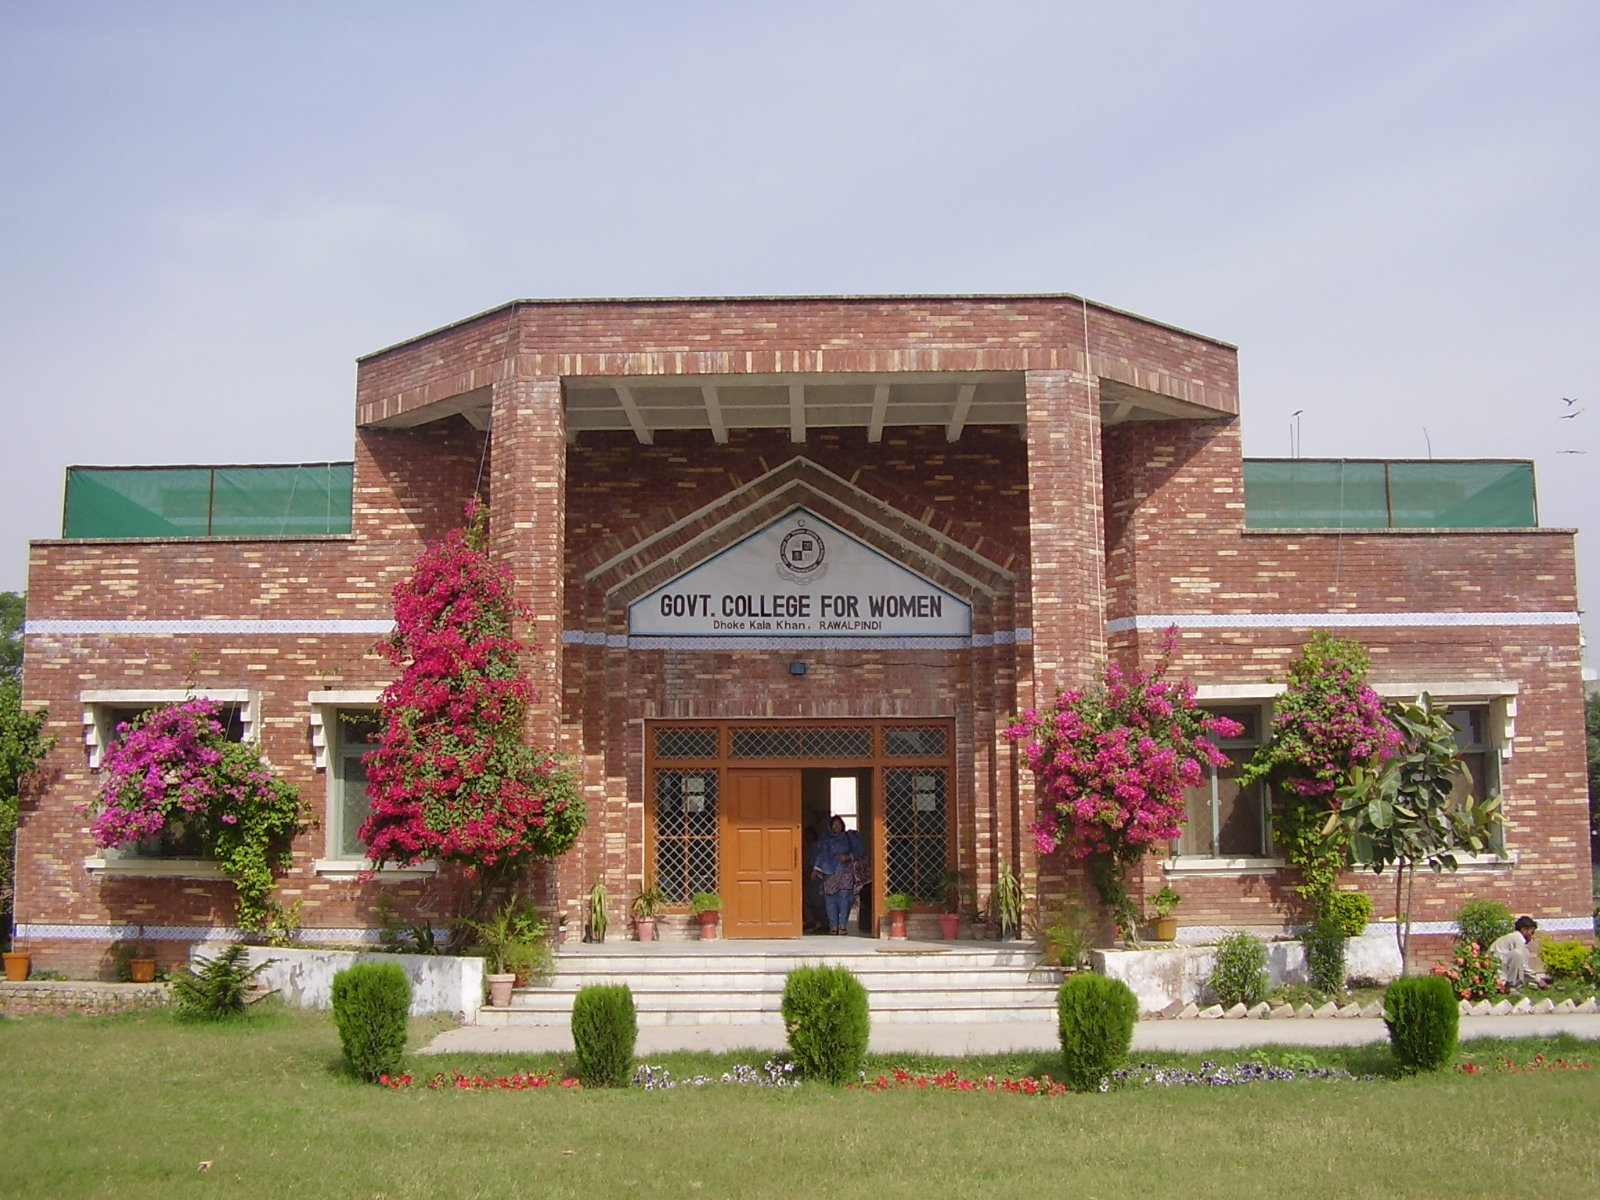 Government_college_for_Women_Dhoke_Kala_Khan.JPG (1600×1200)